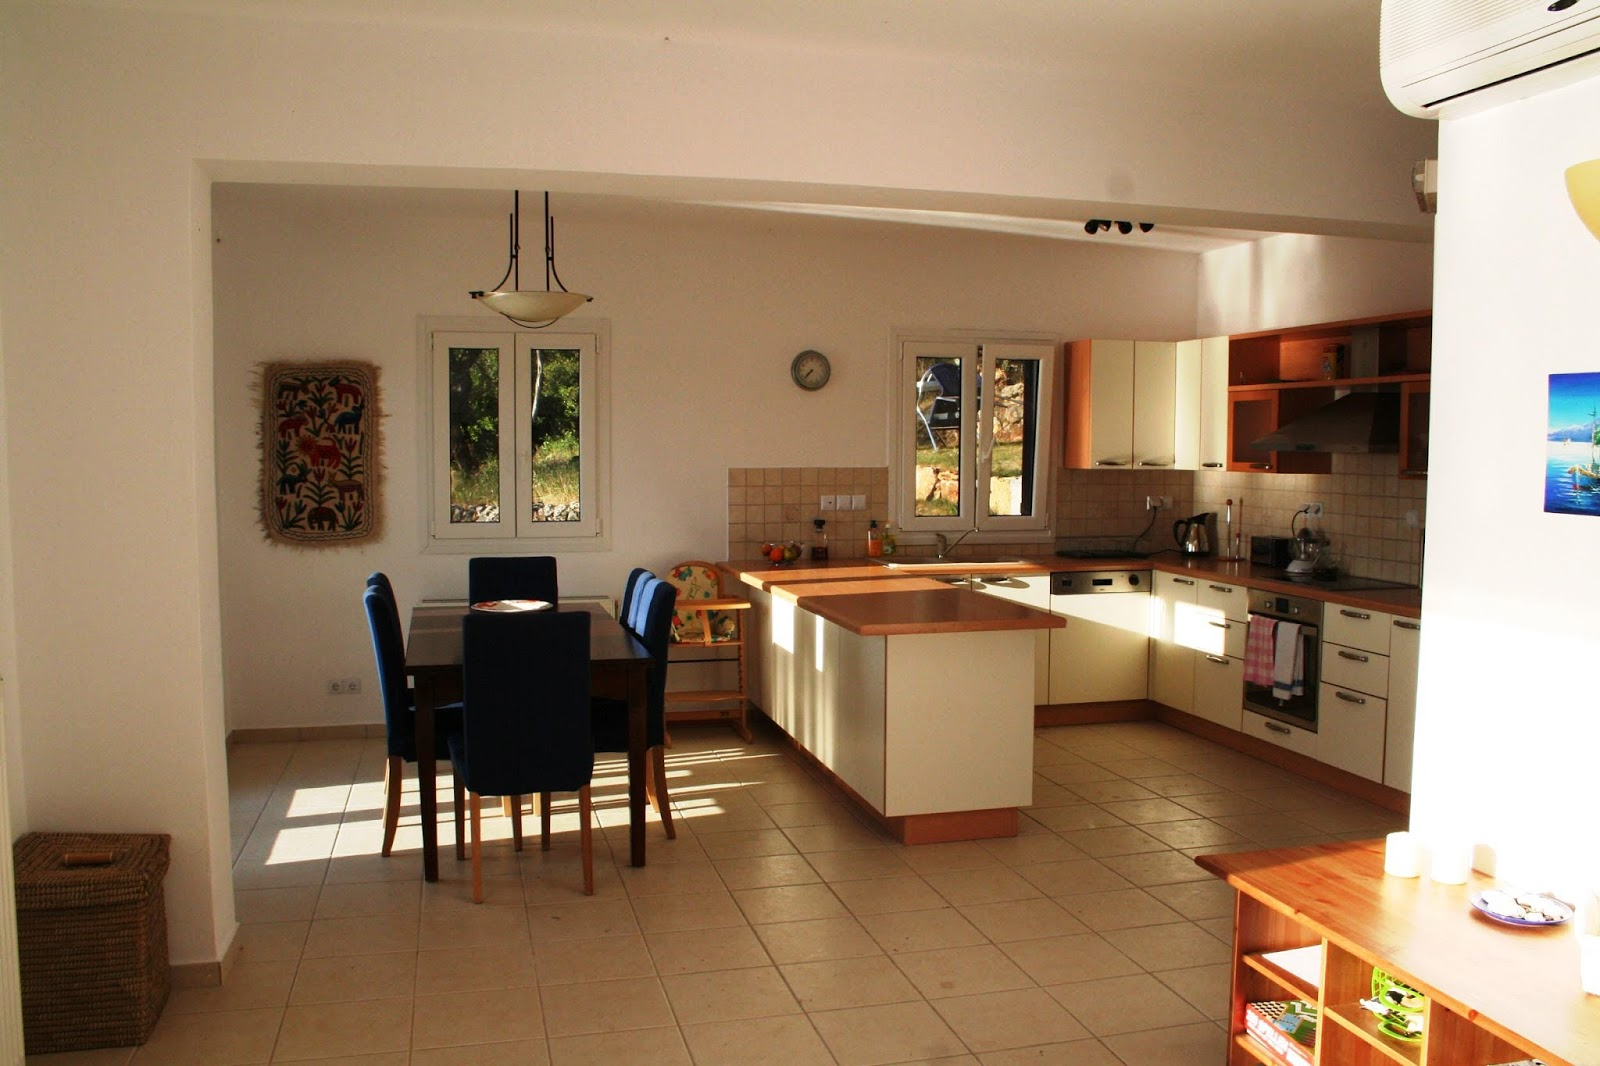 Apartment open kitchen design - Today We Will Show You New Modern And Luxury Designs This Article Helps You To Decorate Your Home Apartment Apartment Rooms A Garden